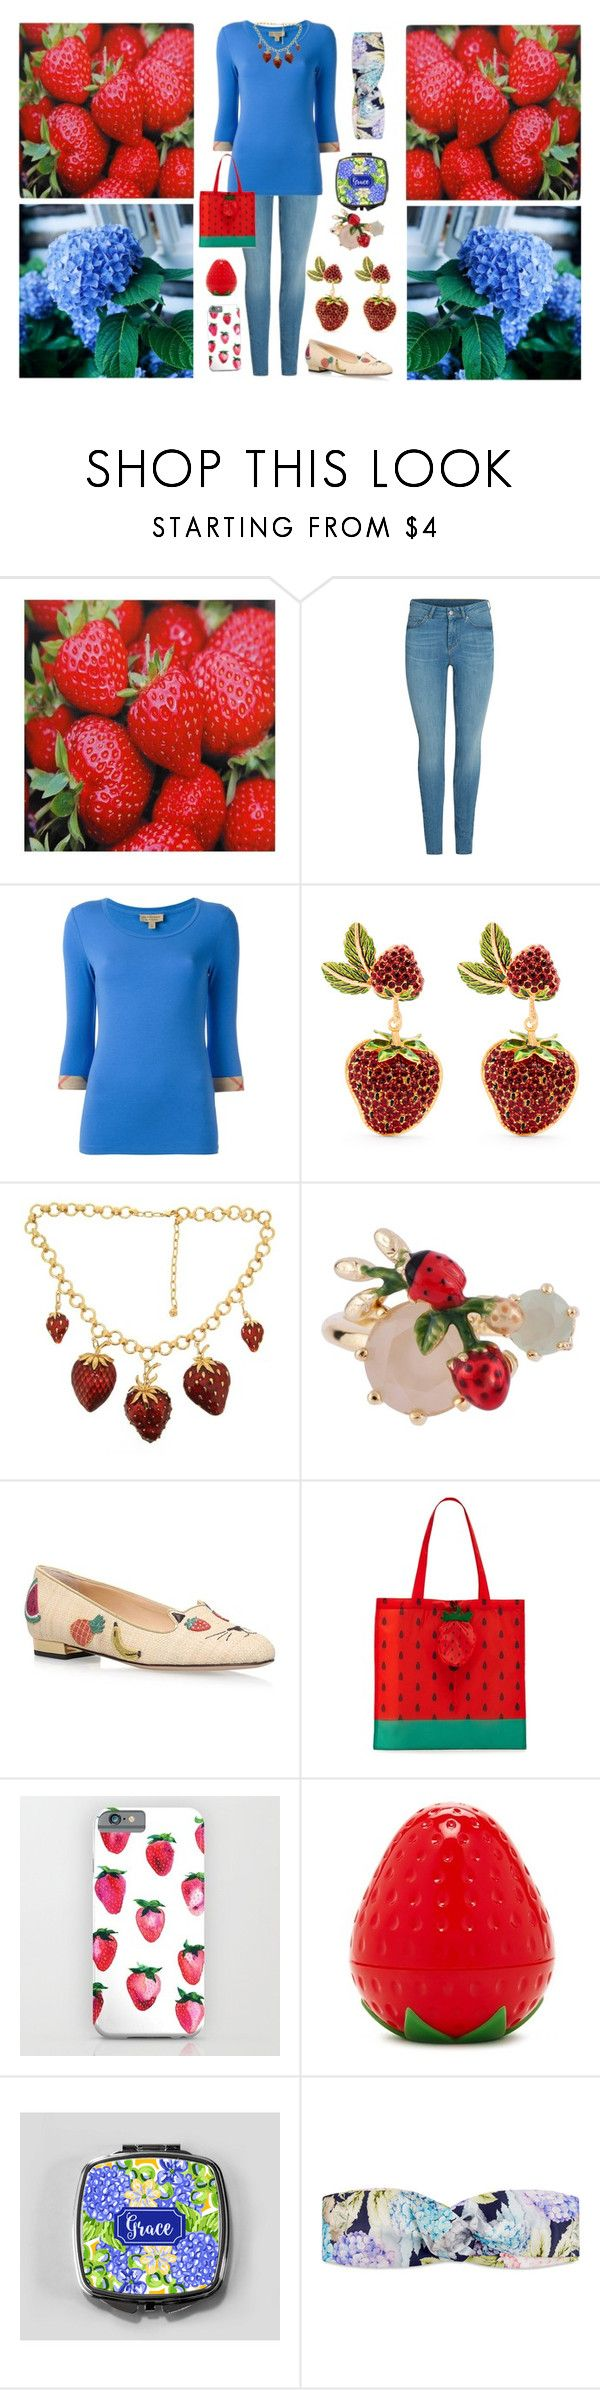 """""""Strawberry & Hydrangea"""" by pinky-dee ❤ liked on Polyvore featuring Burberry, Dolce&Gabbana, Les Néréides, Charlotte Olympia, Forever 21 and Gucci"""